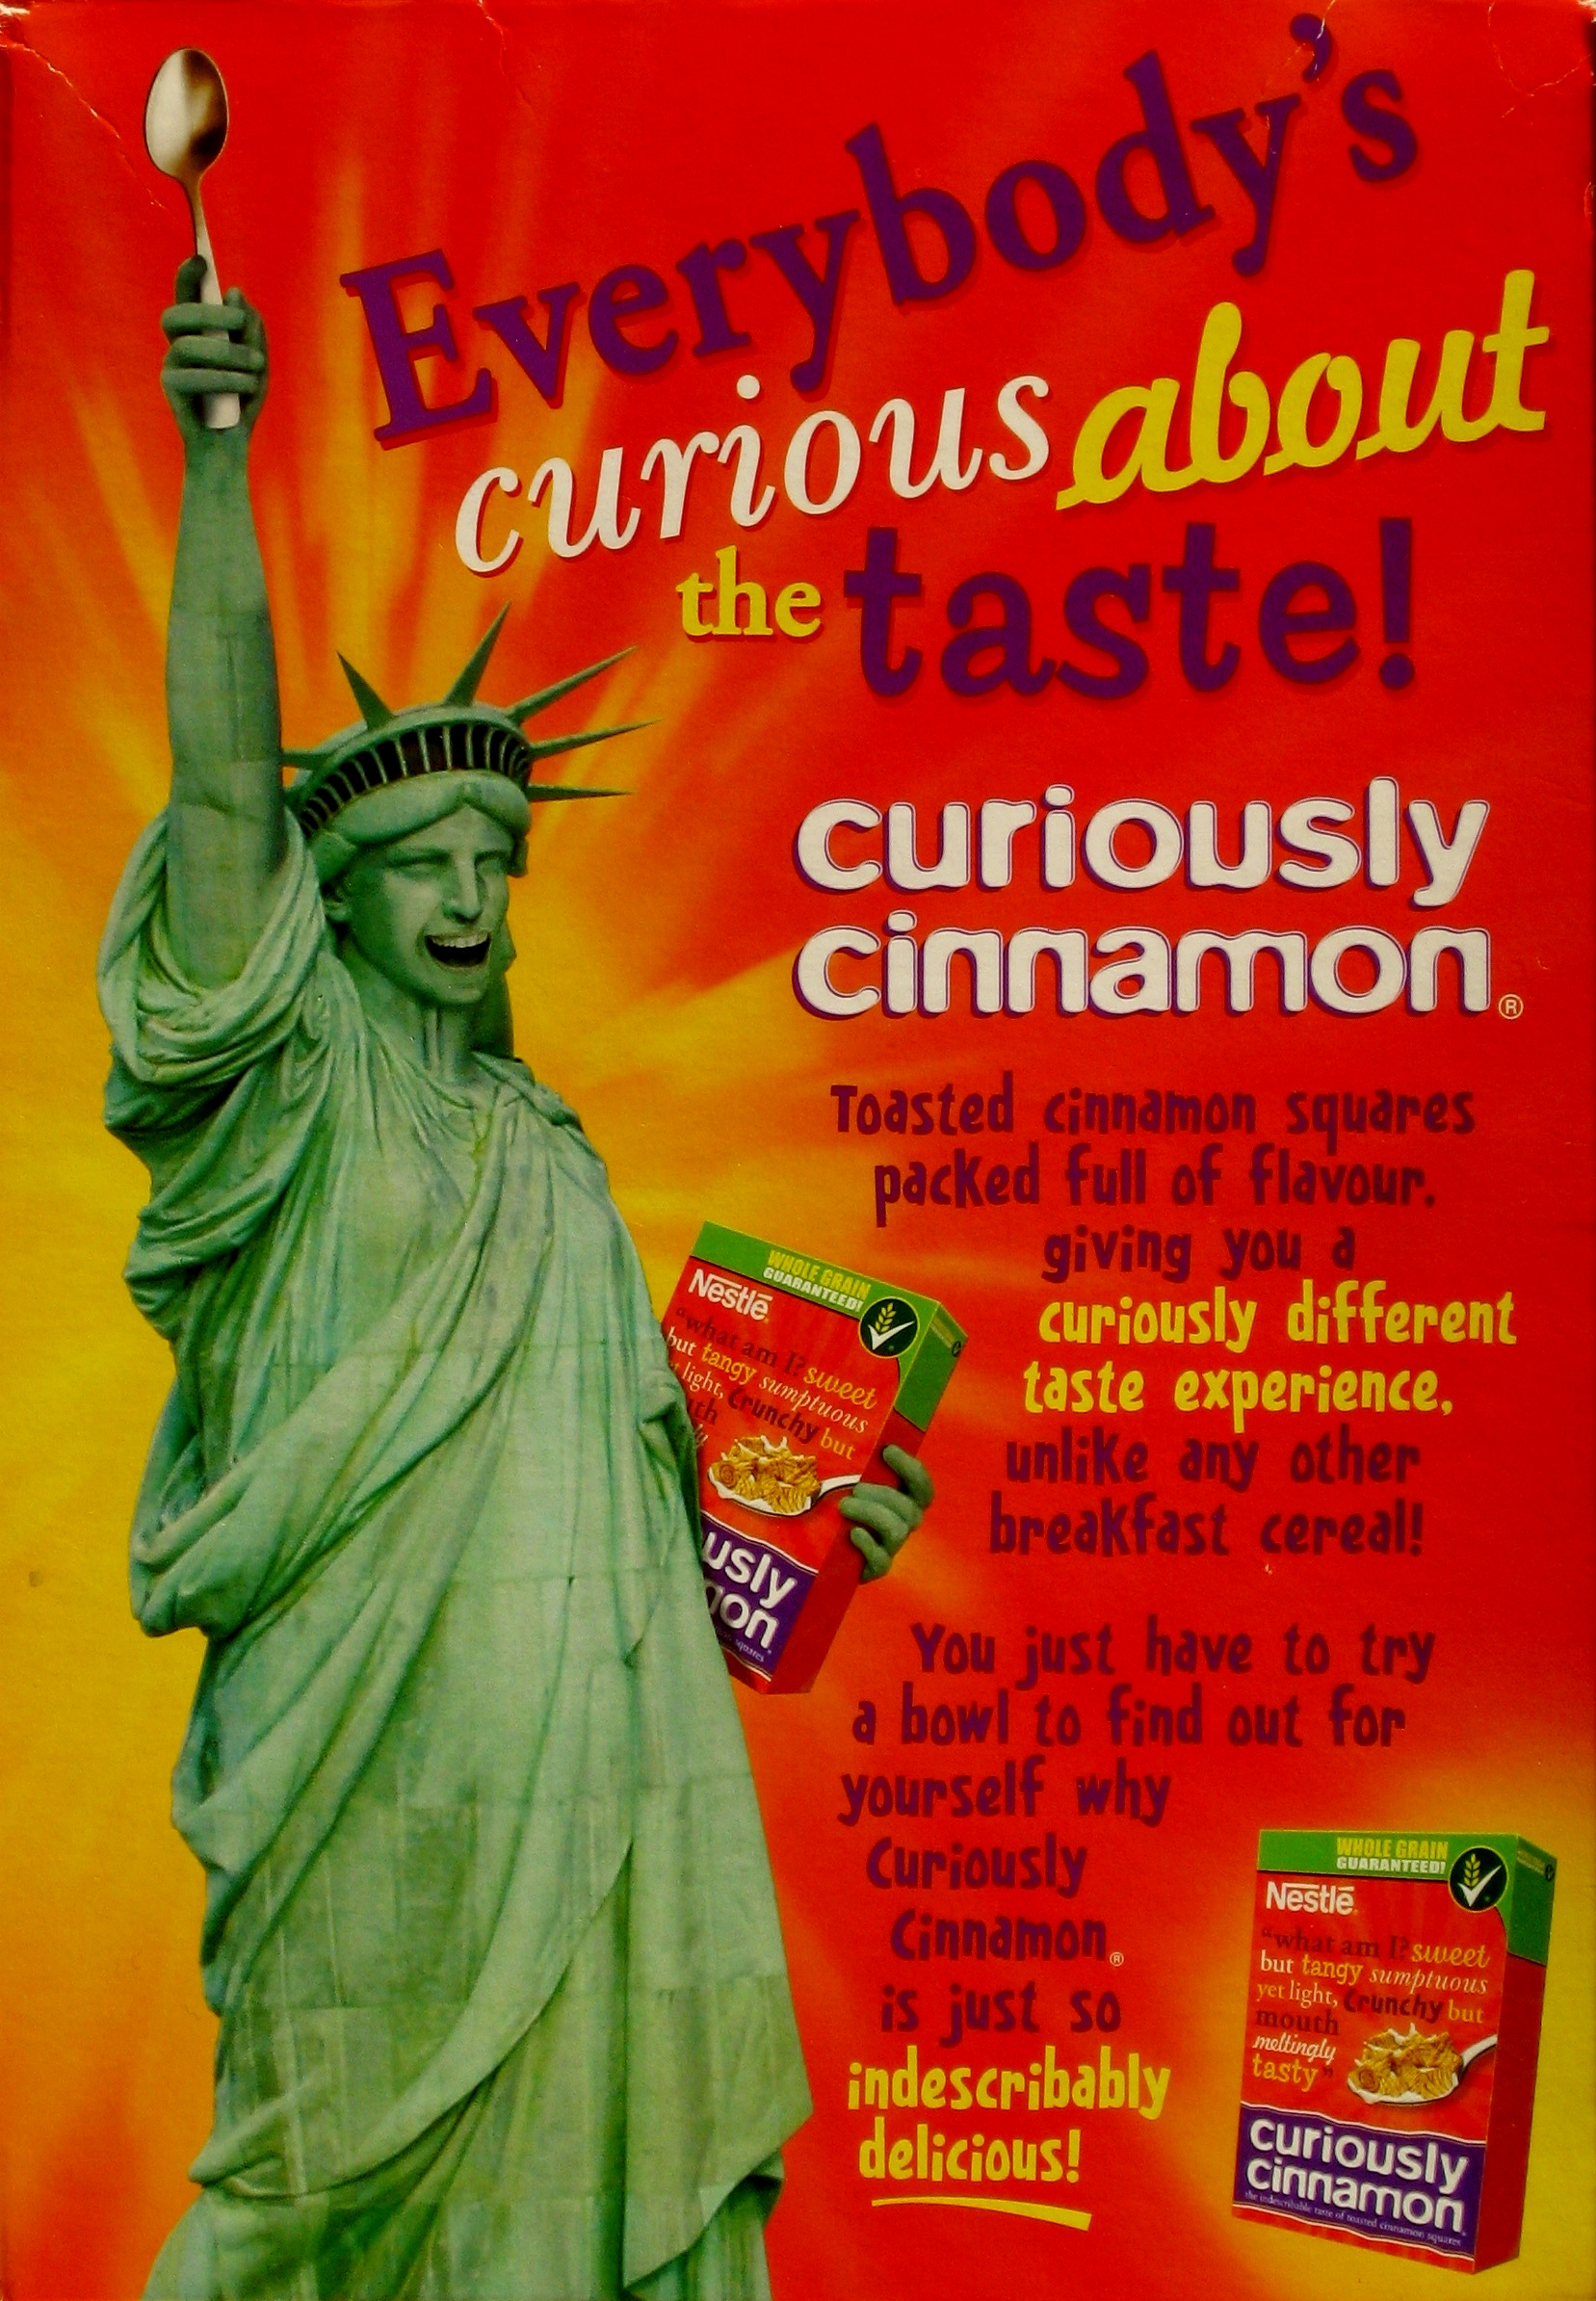 2009 Curiously Cinnamon - name change back